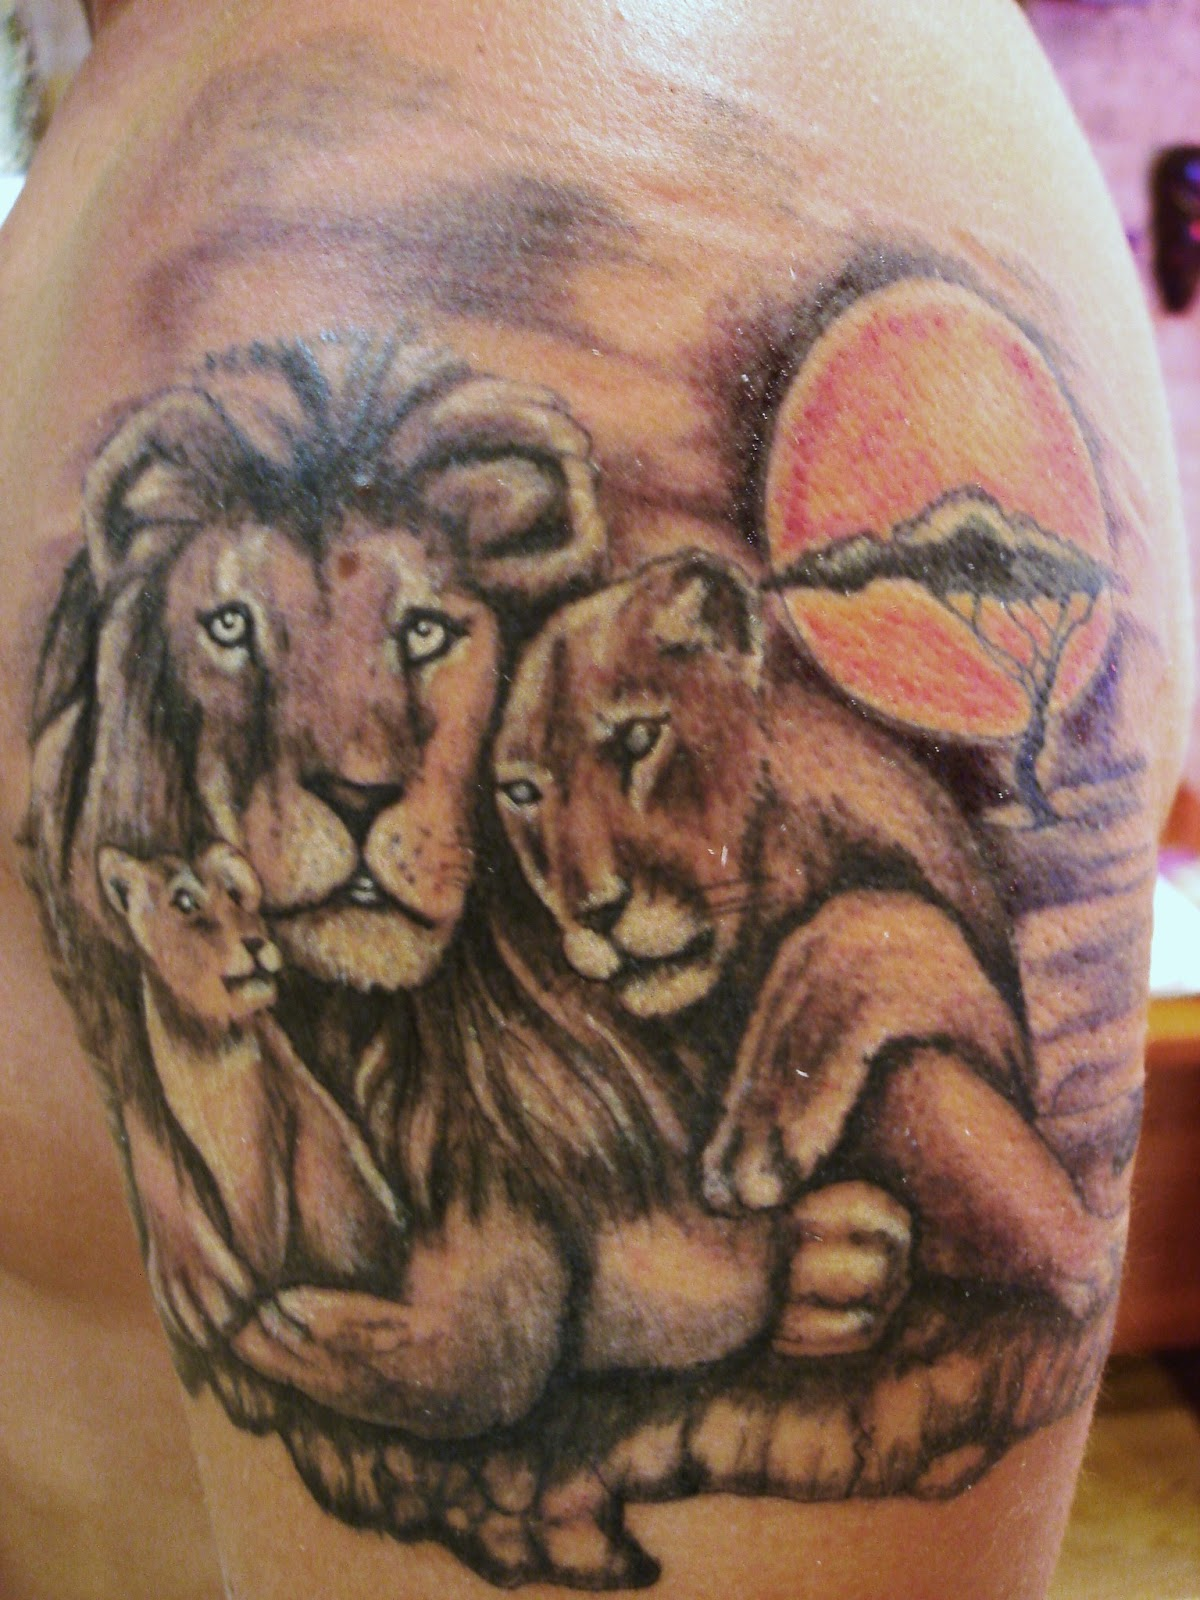 Toop Tattoo Los Reyes De La Selva Toop Tattoo Alicante Leon Tattoo